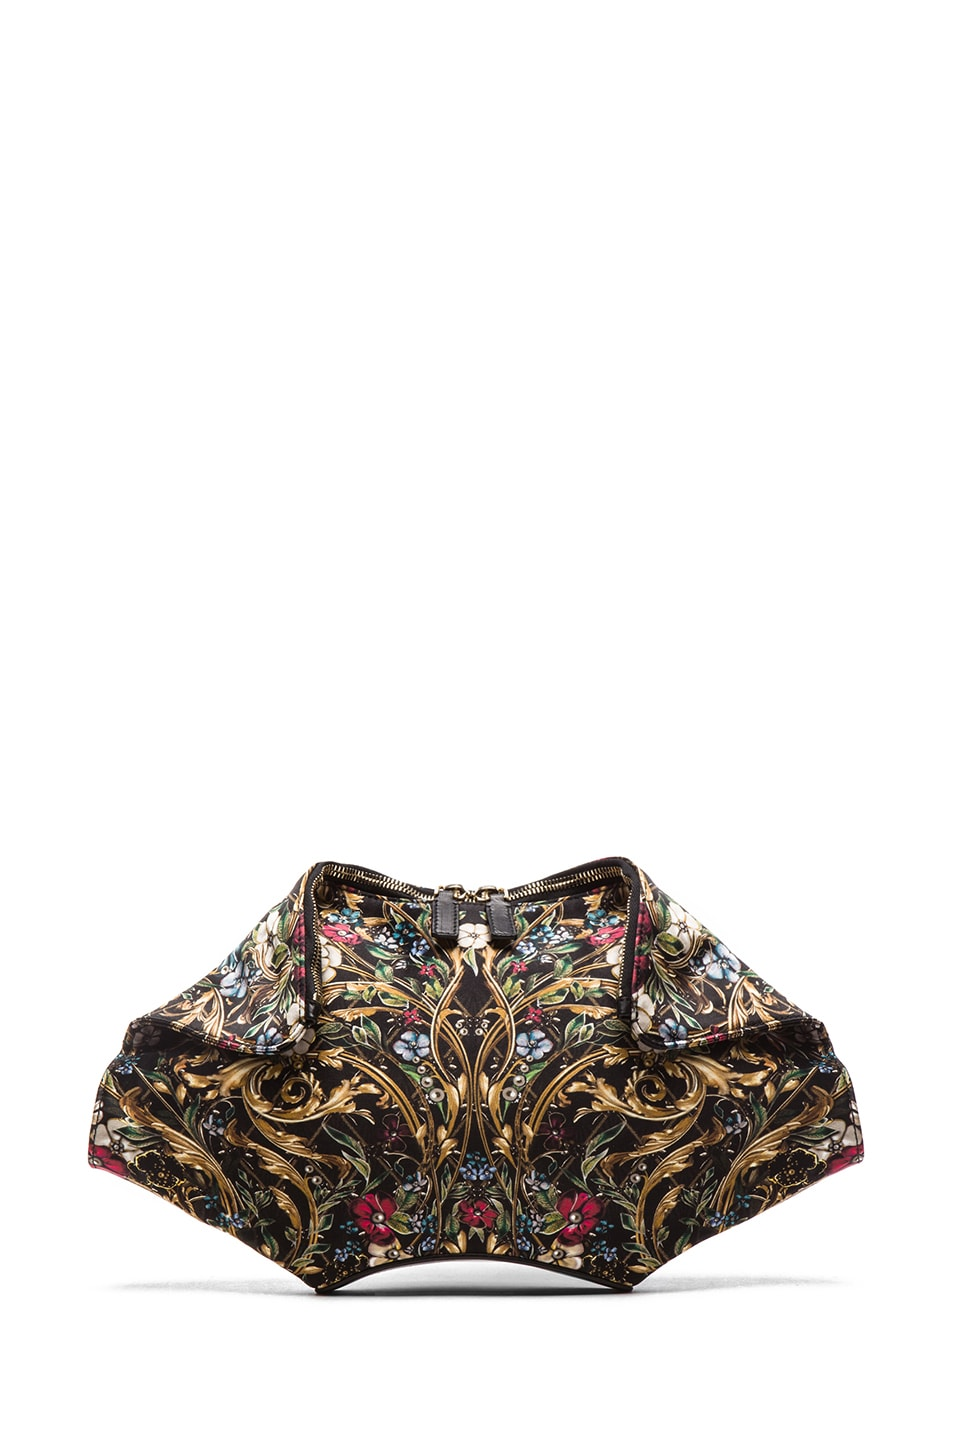 Image 1 of Alexander McQueen De Manta Floral Print Clutch in Black